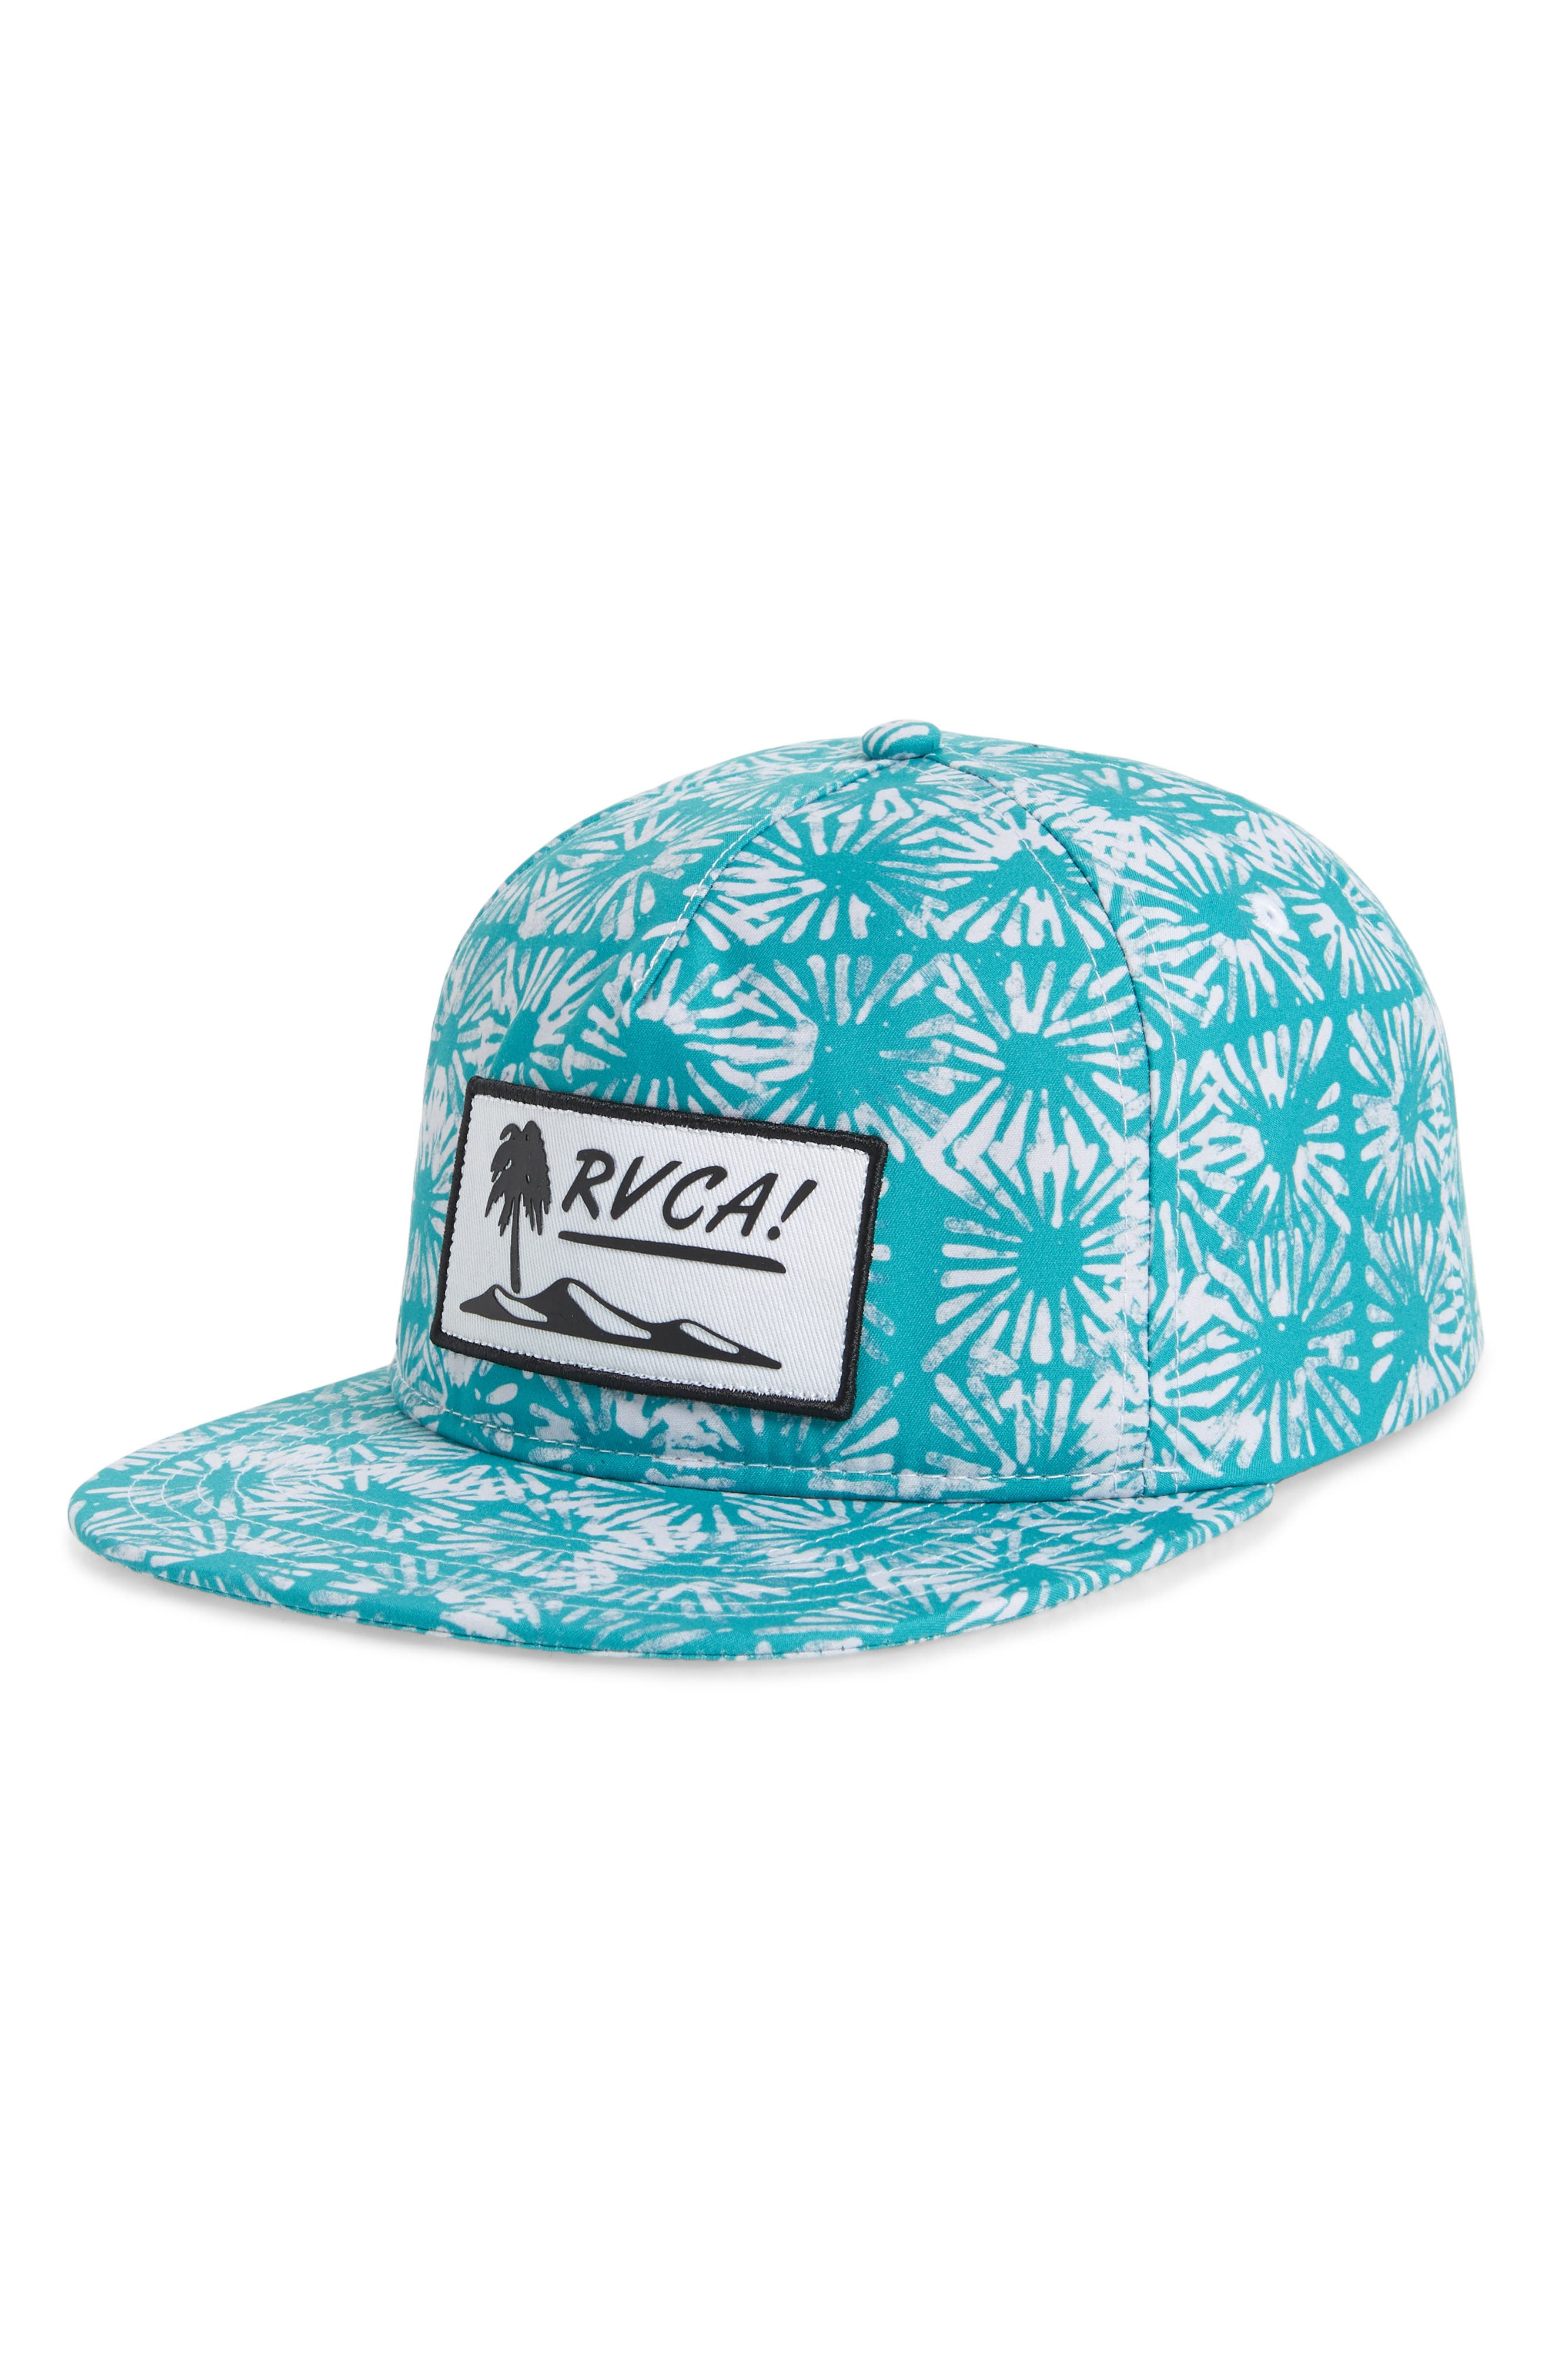 Duh Loris Snapback Cap,                         Main,                         color, Teal